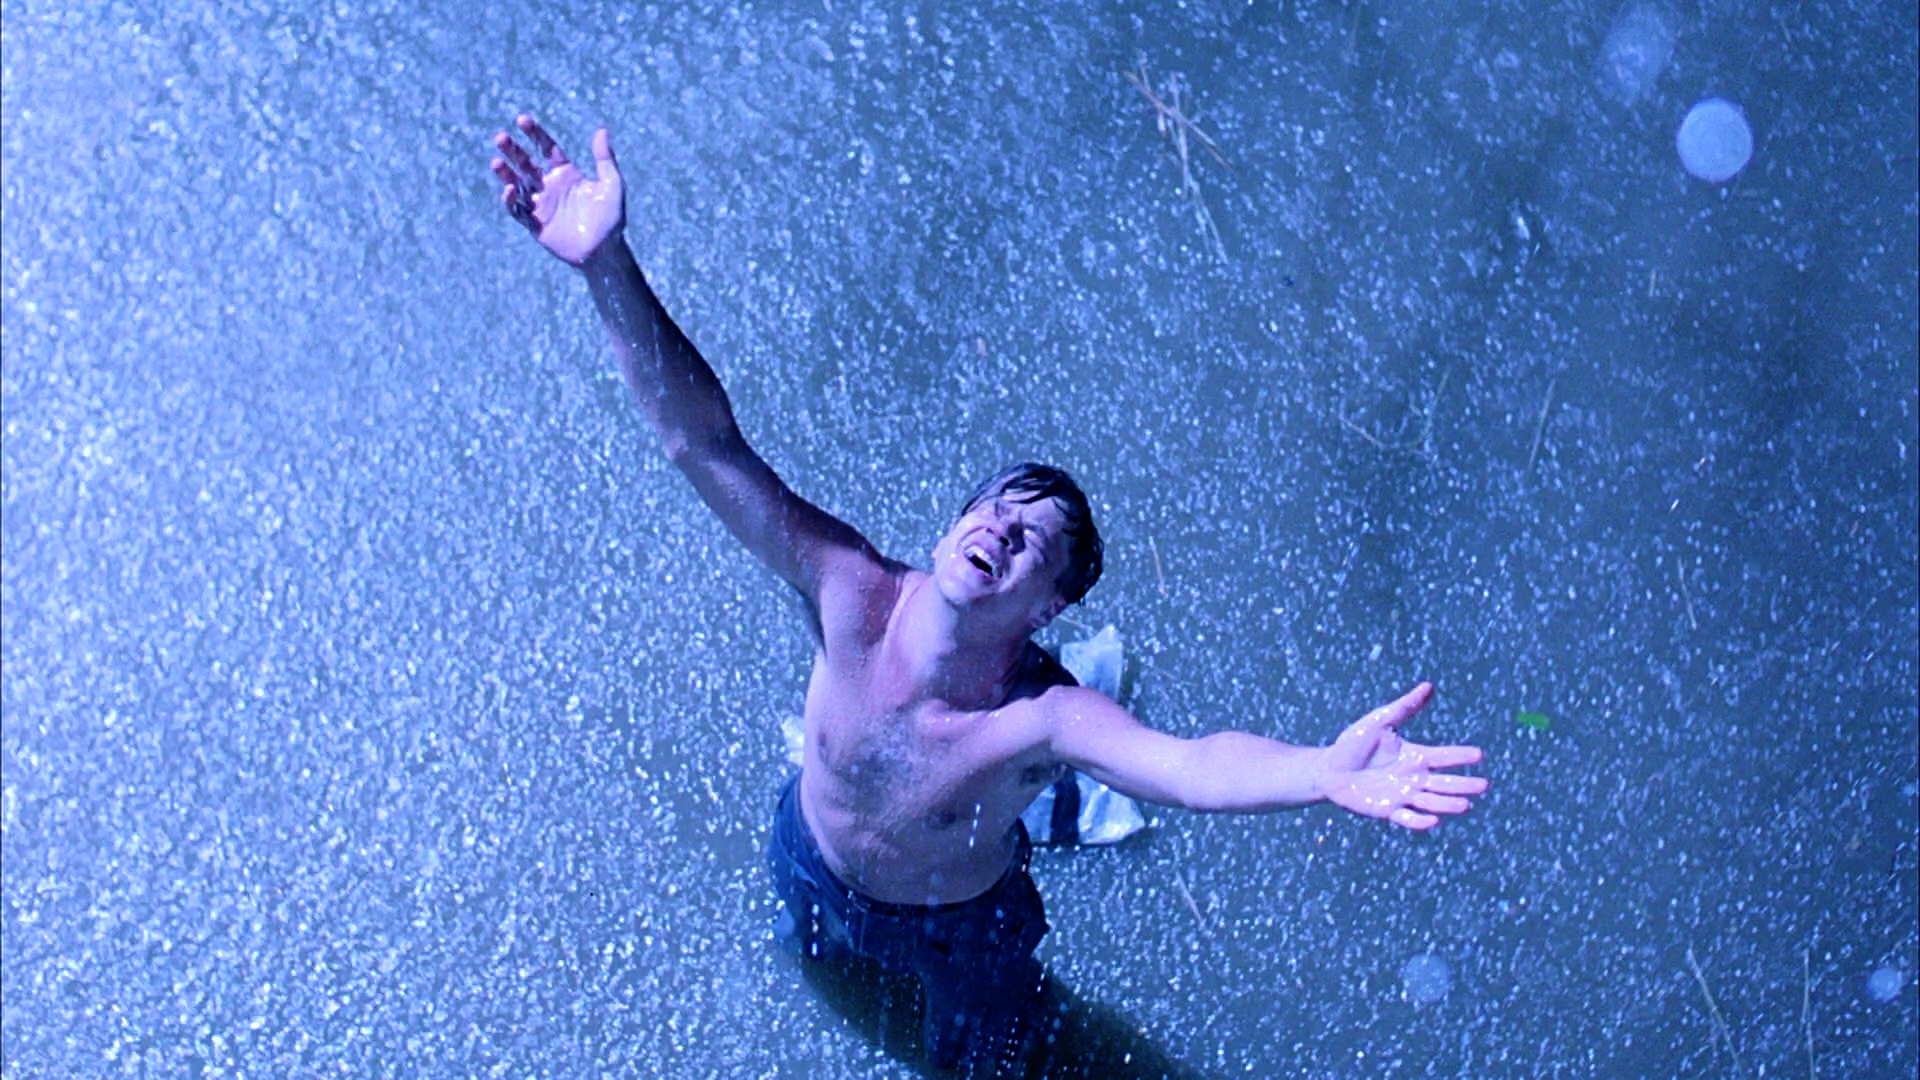 shawshank redemption Watch full movie the shawshank redemption, 1997 online free genre: crime | drama tagline: fear can hold you prisoner hope can.